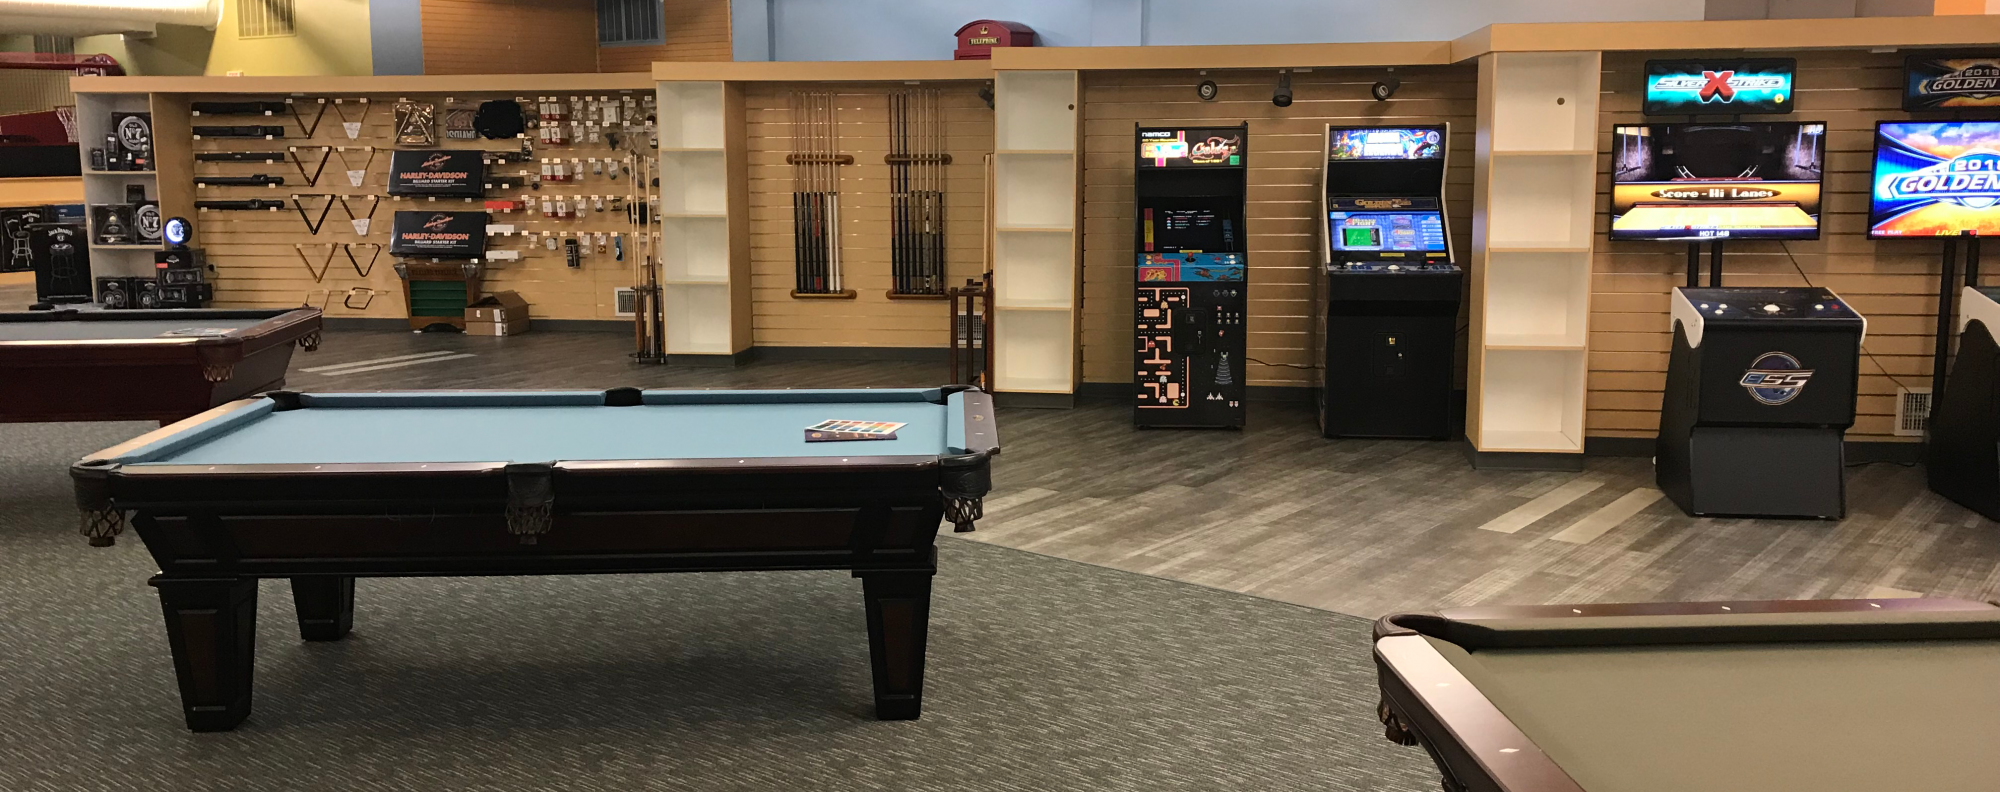 With growing online order volumes and an expanding customer base, automating order fulfillment was critical for Game Room Guys to maximize growth.